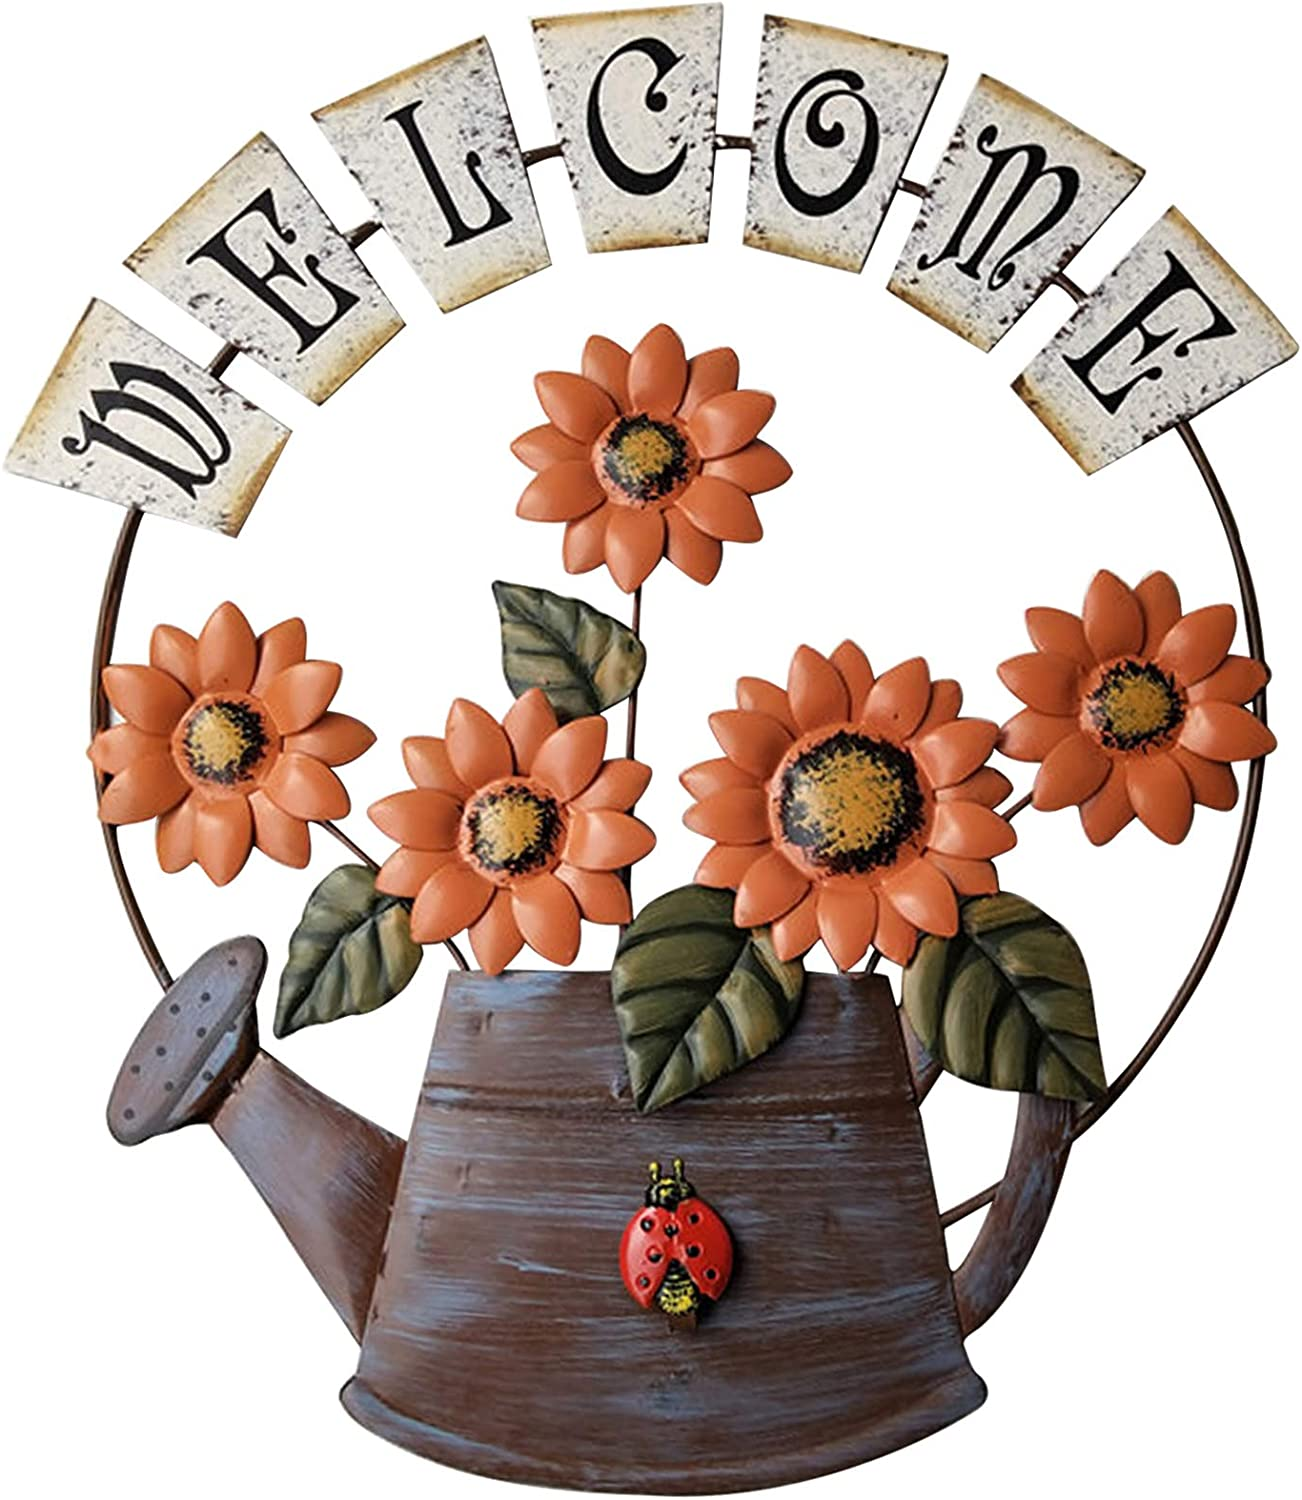 TISOSO Farmhouse Watering Can Design Sunflower Welcome Sign Rustic Welcome Door Sign Garden Themed Hanging Sign for Outdoor Home Kitchen Bathroom Wall Art Yard Entryway Decor Orange 15.5X14Inch